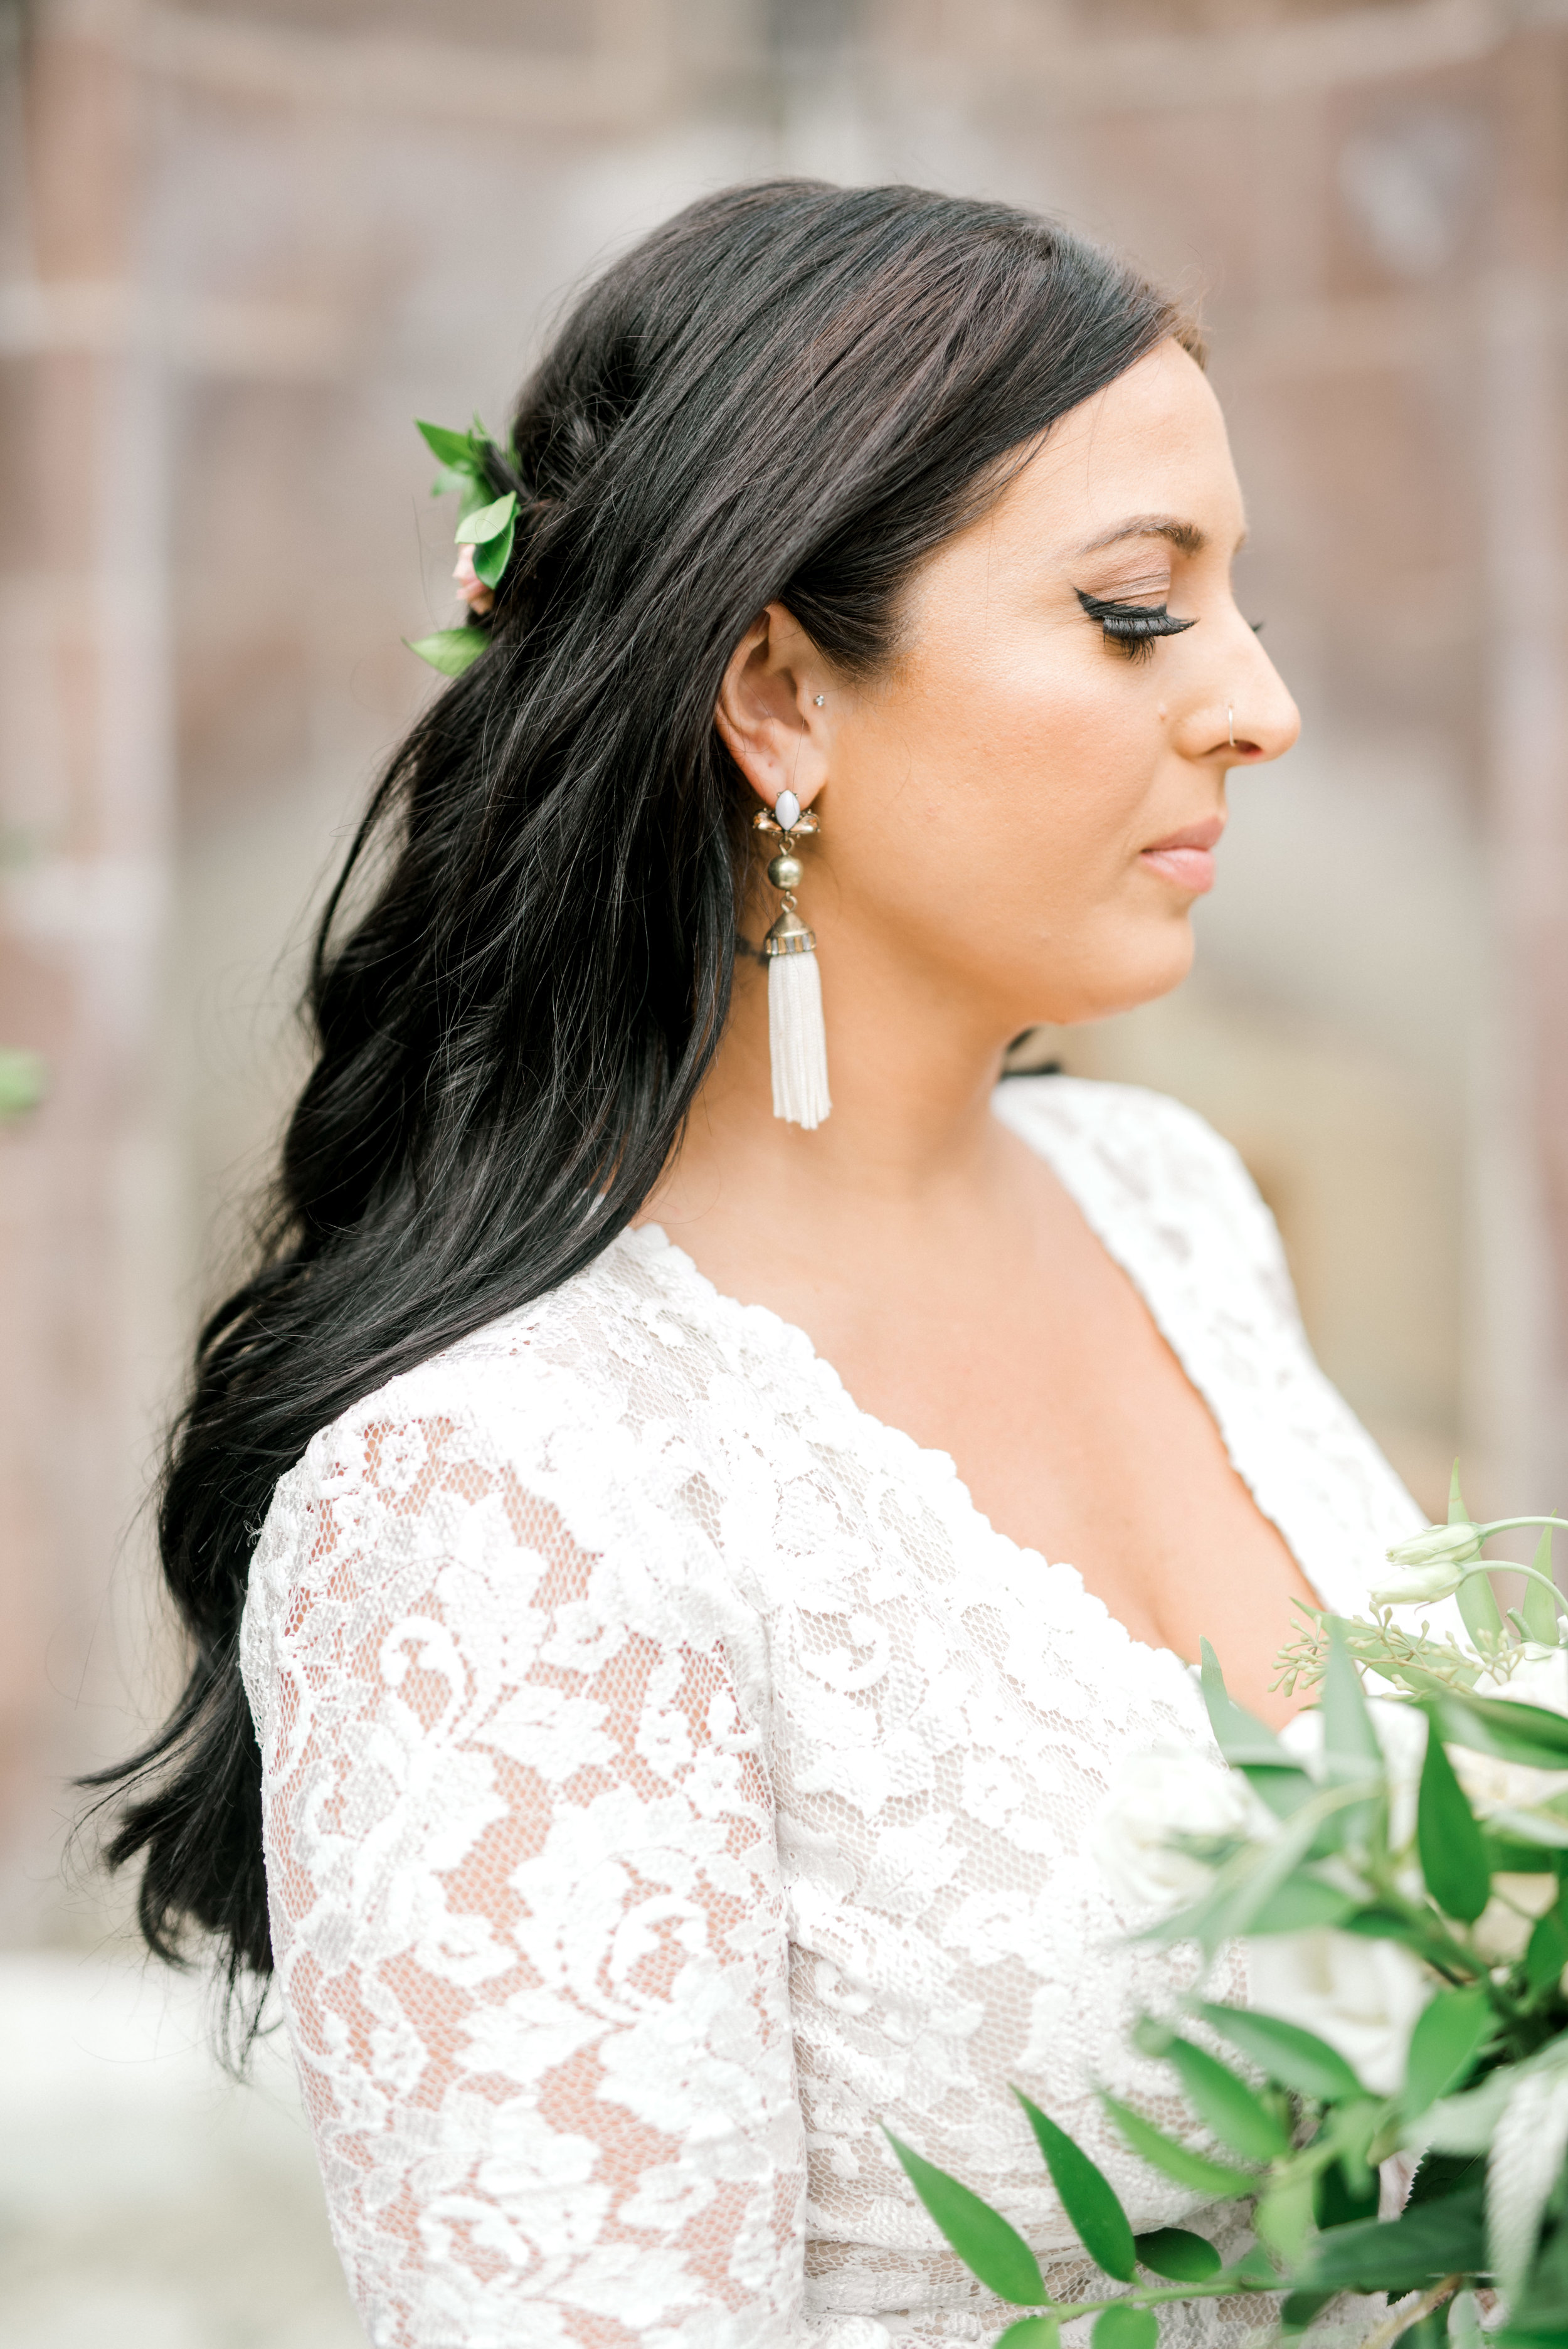 Alicia had such a timeless look, mixing some funky tassel earrings with a lace gown from BHLDN for her bright boho chic Tyler Gardens wedding in Bucks County